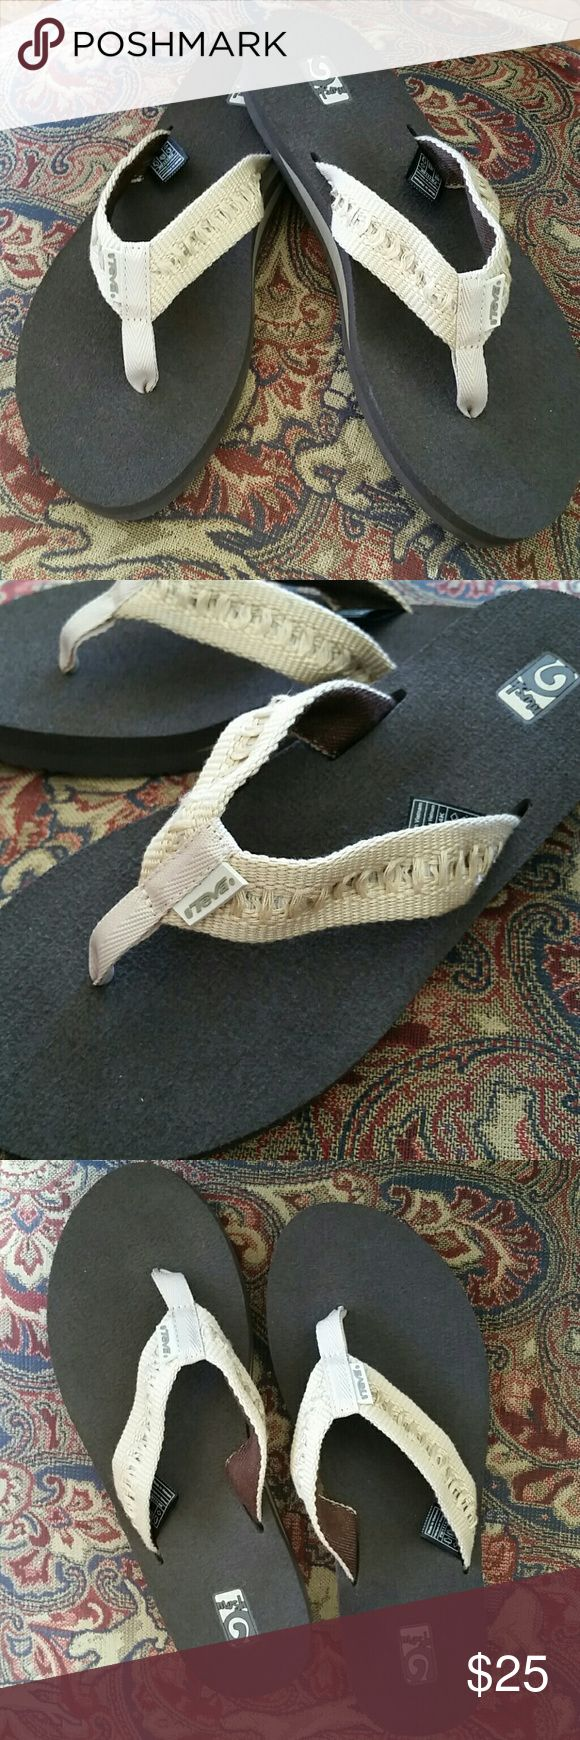 SALE!🌴Teva flip flops🌴 NWOT. NEVER Worn! Beautiful cream colored Teva Mush flip flops. Only selling bc they are too small! These are awesome summer flip flops! Get them before they're gone 🌞 **LOWEST PRICE, no offers accepted unless bundled.** 🚫NO more Low Ball's, I ignore them❗🚫 Teva Shoes Sandals